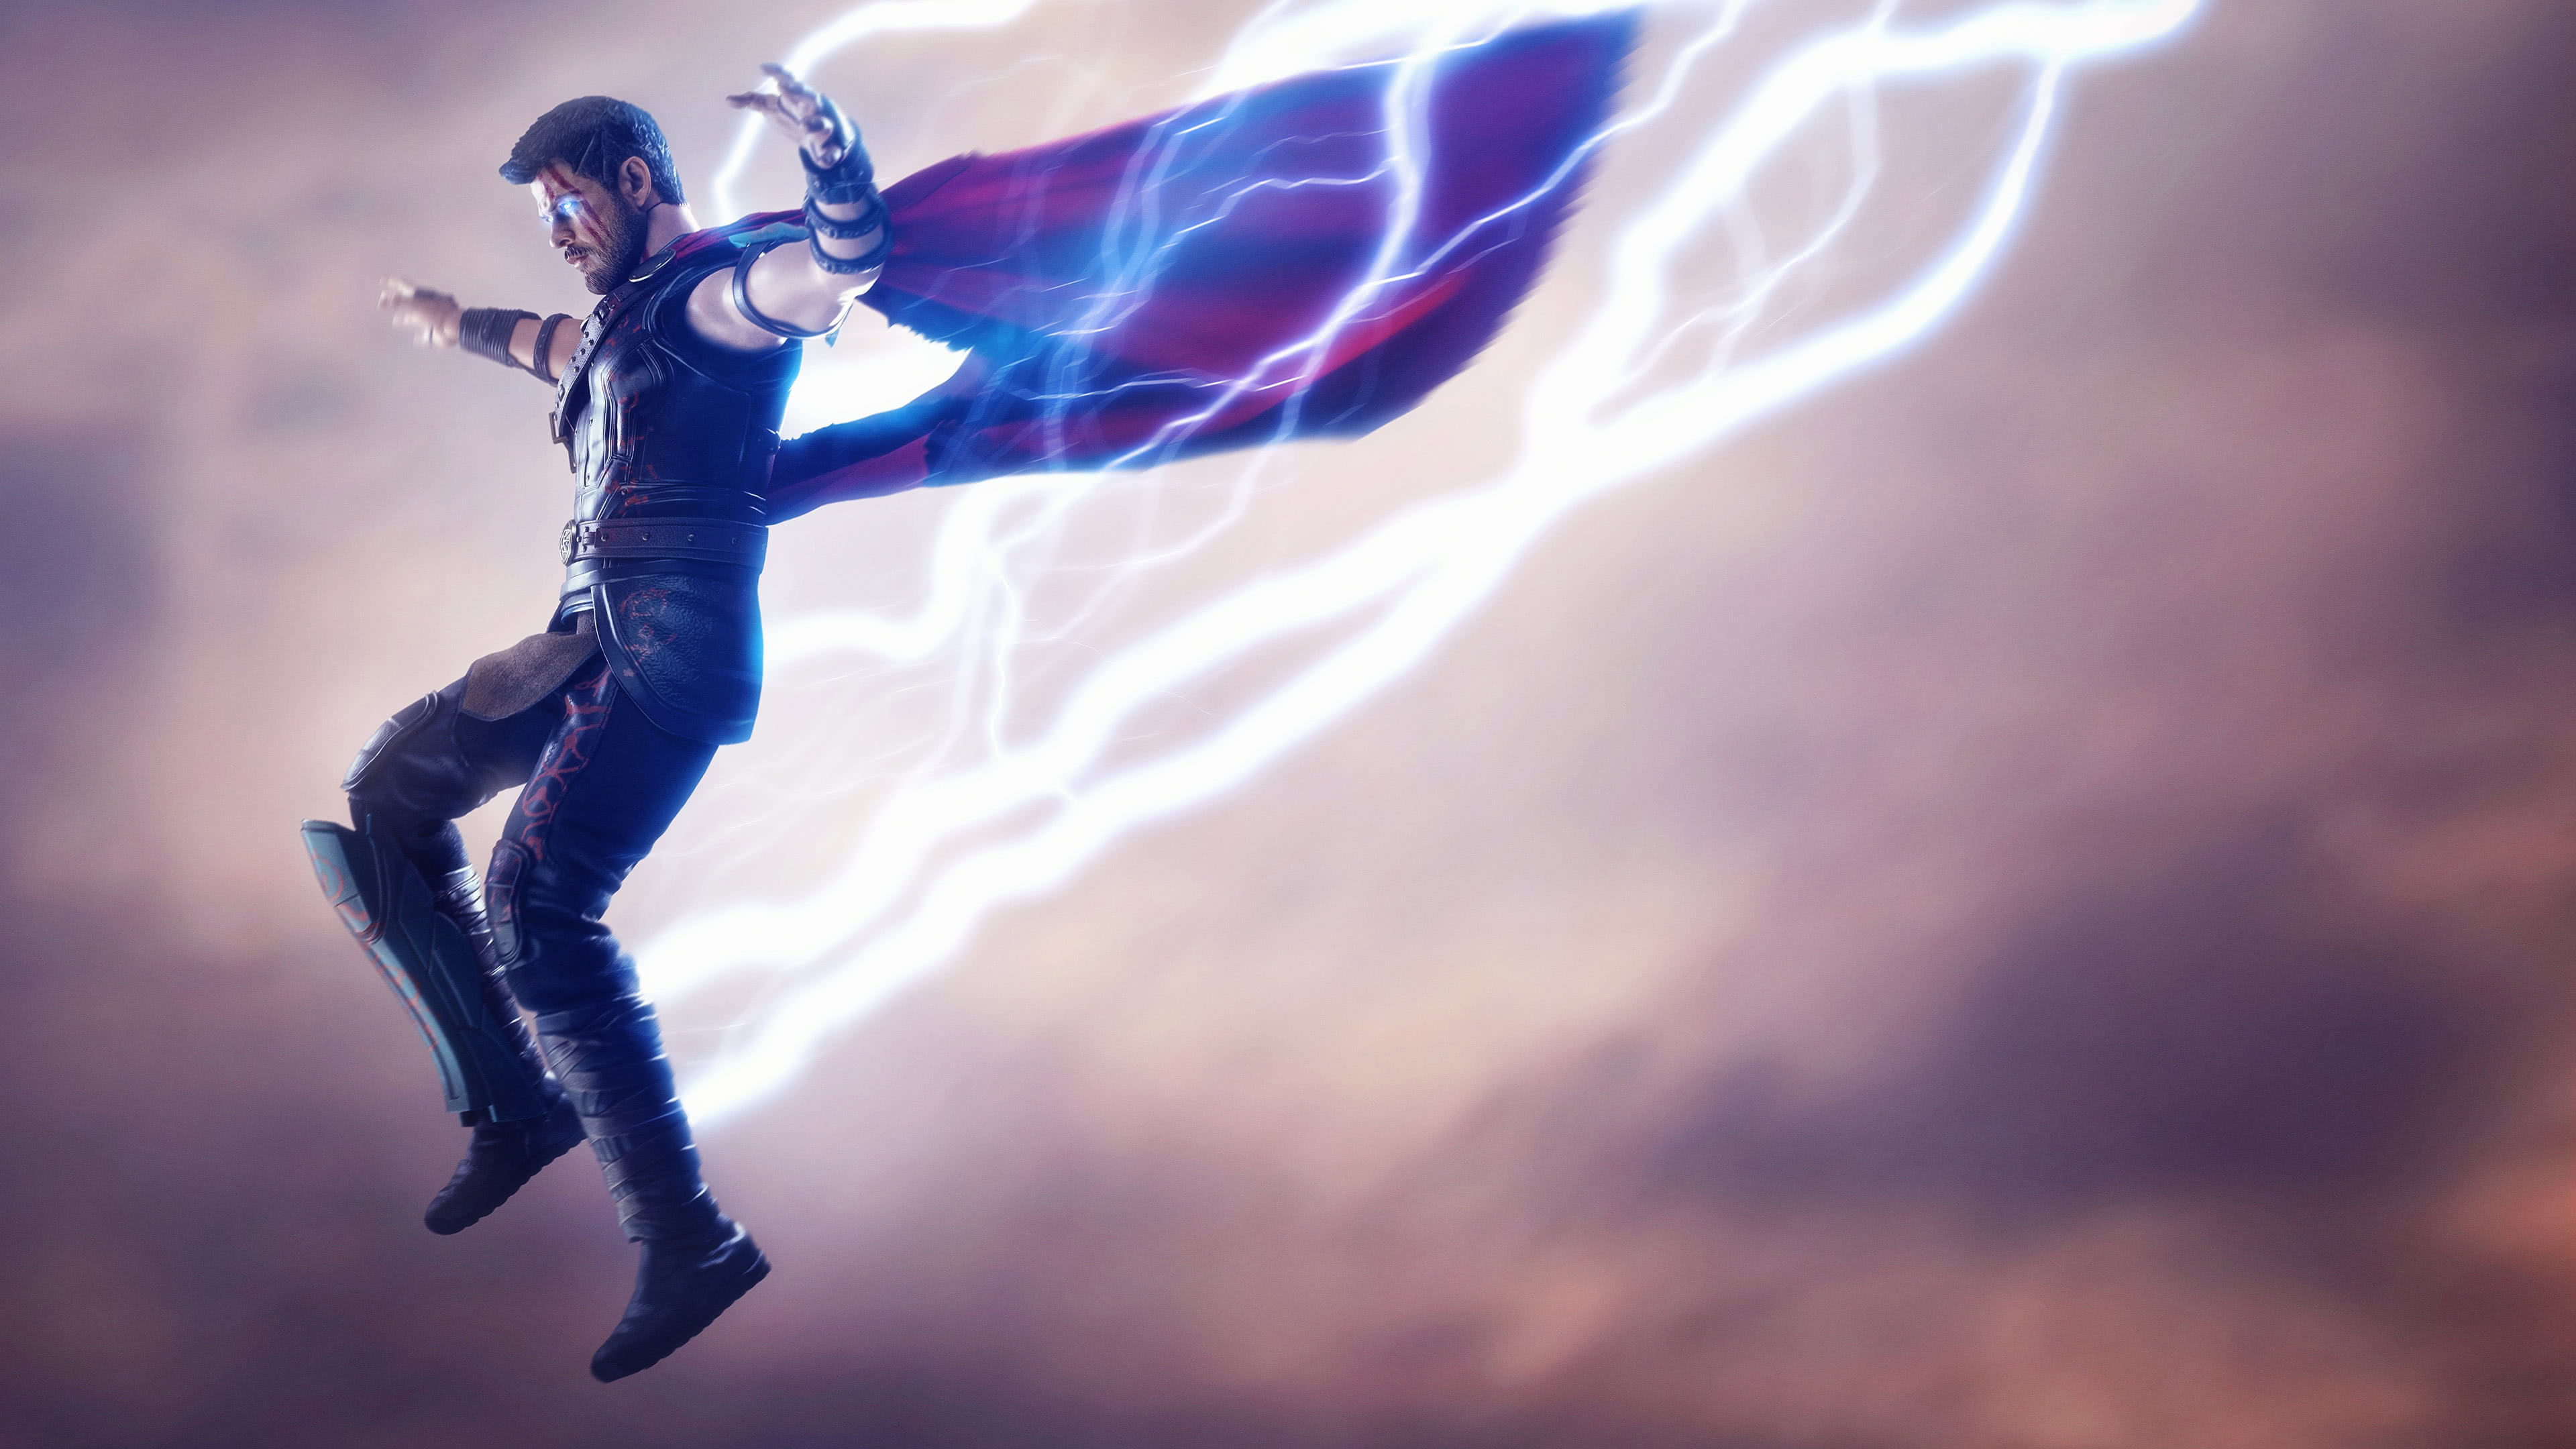 thor artwork uhd 4k wallpaper